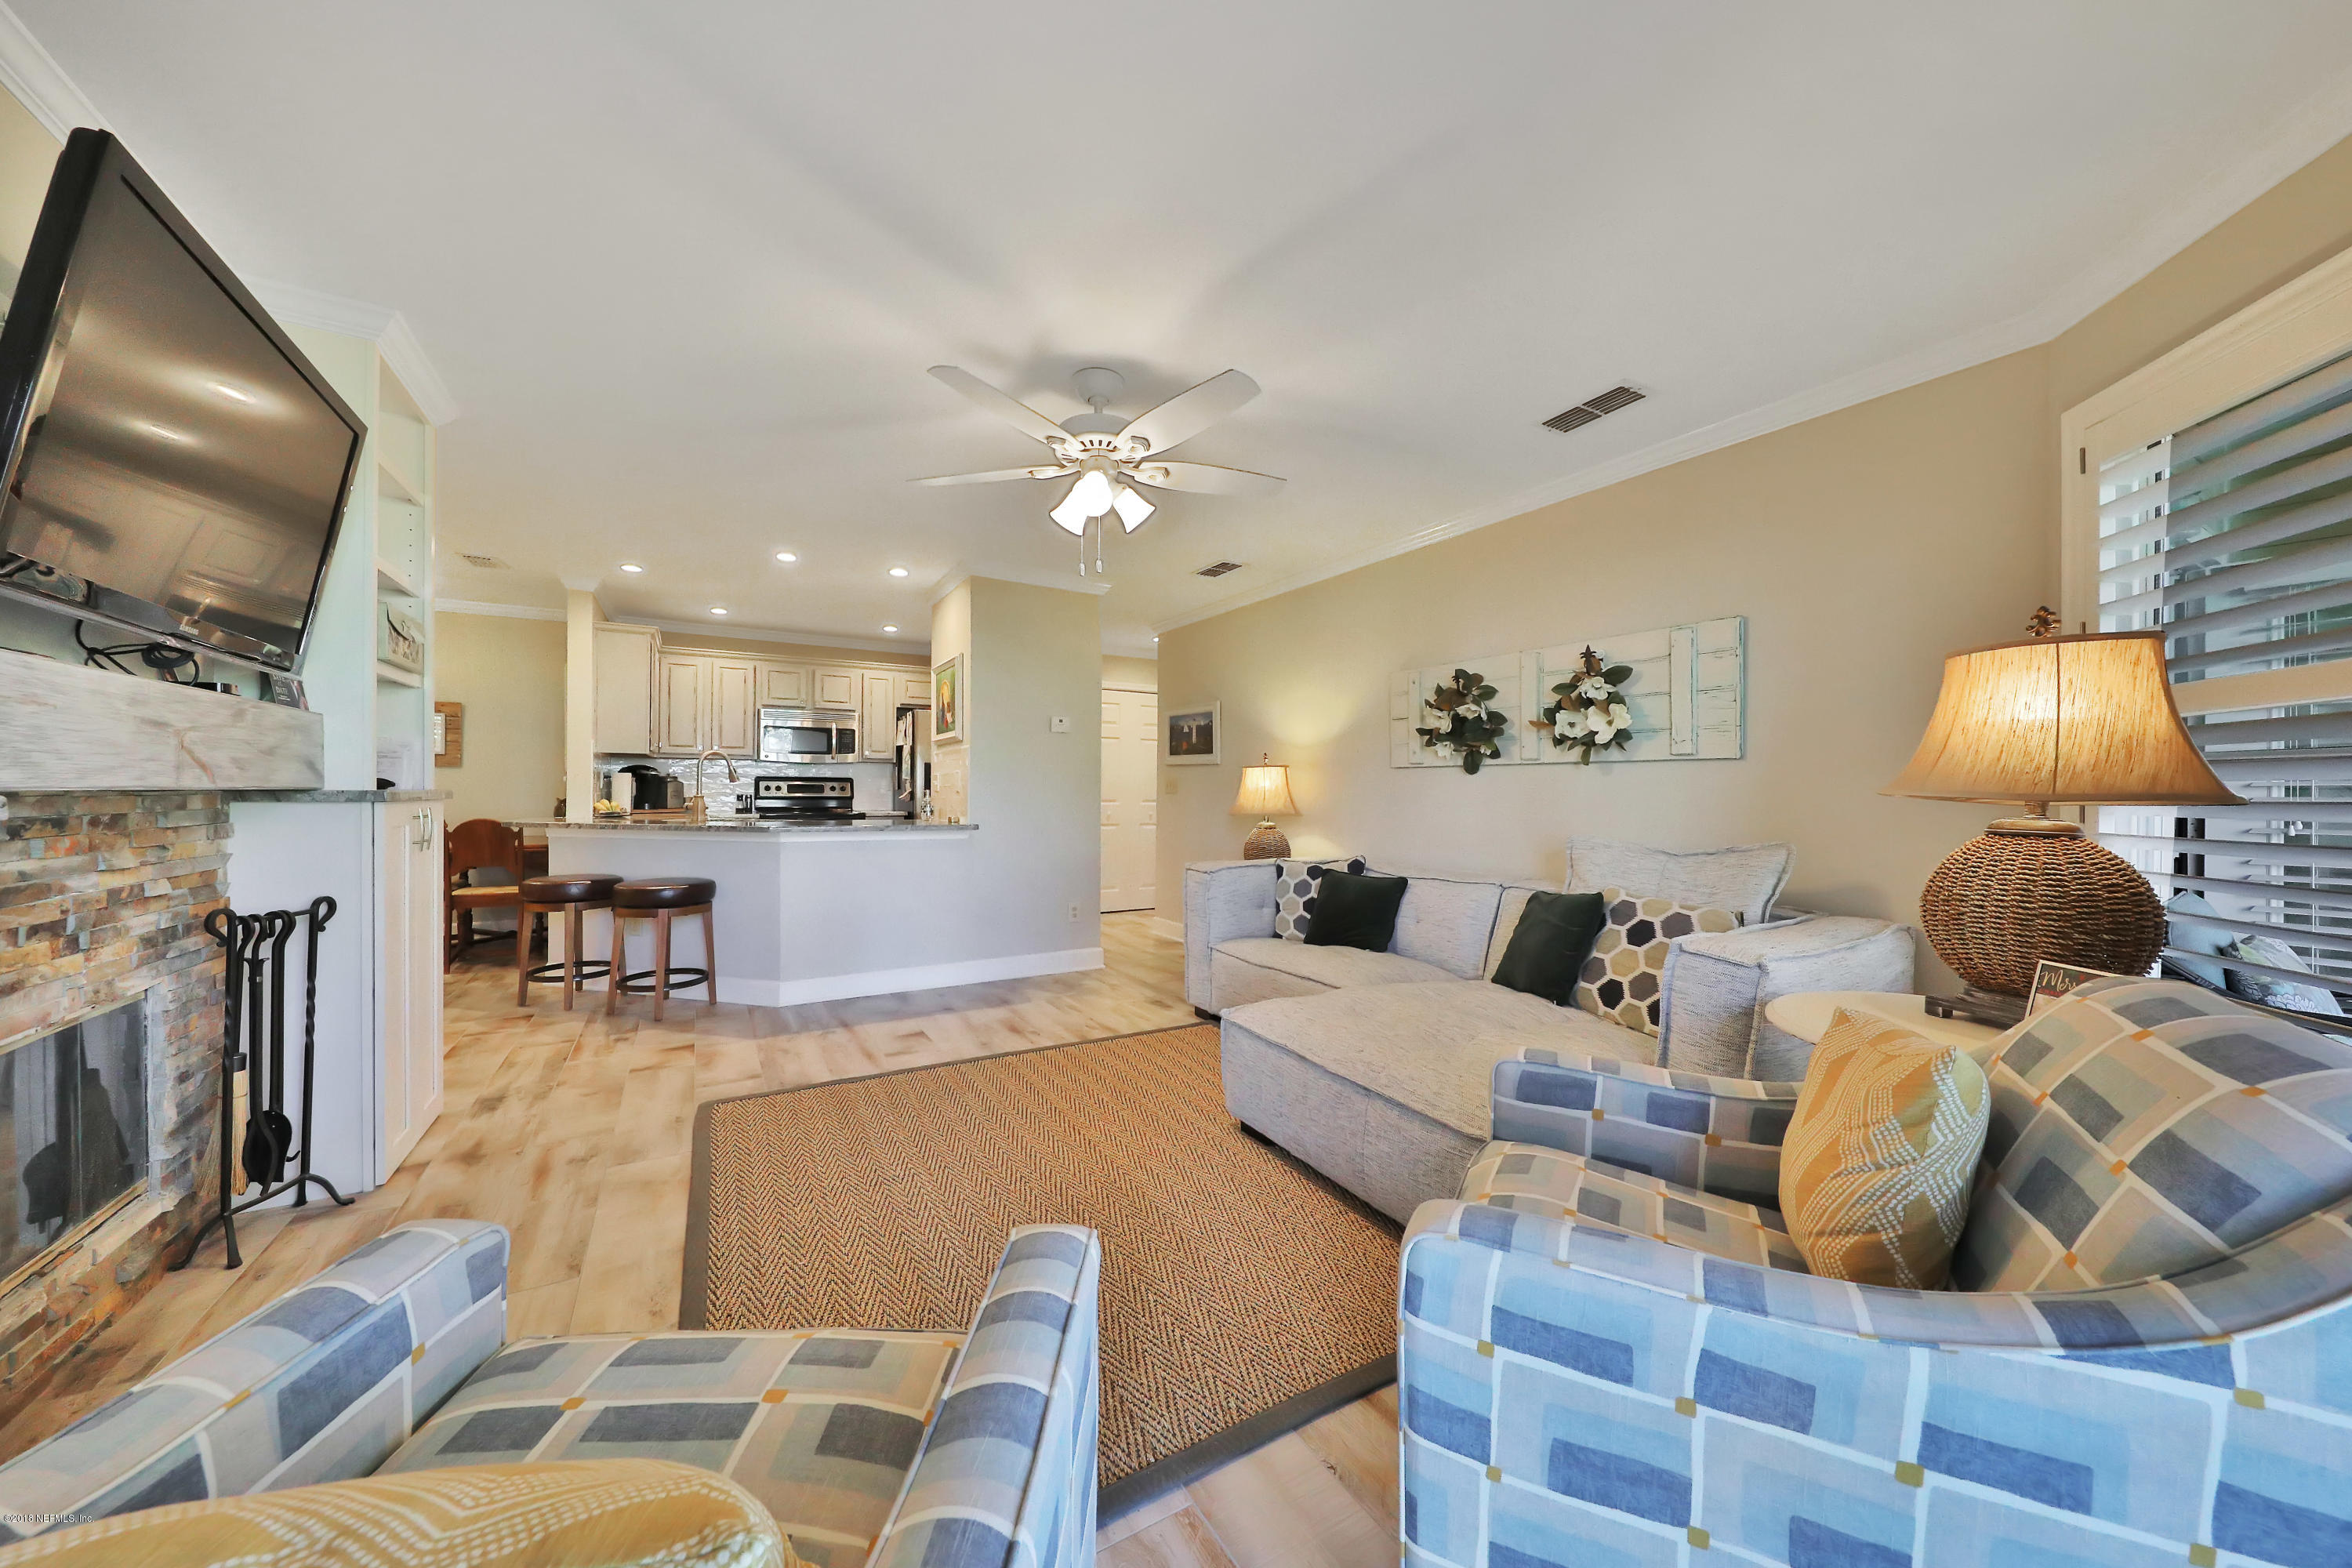 700 IRONWOOD, PONTE VEDRA BEACH, FLORIDA 32082, 2 Bedrooms Bedrooms, ,2 BathroomsBathrooms,Residential - condos/townhomes,For sale,IRONWOOD,964772